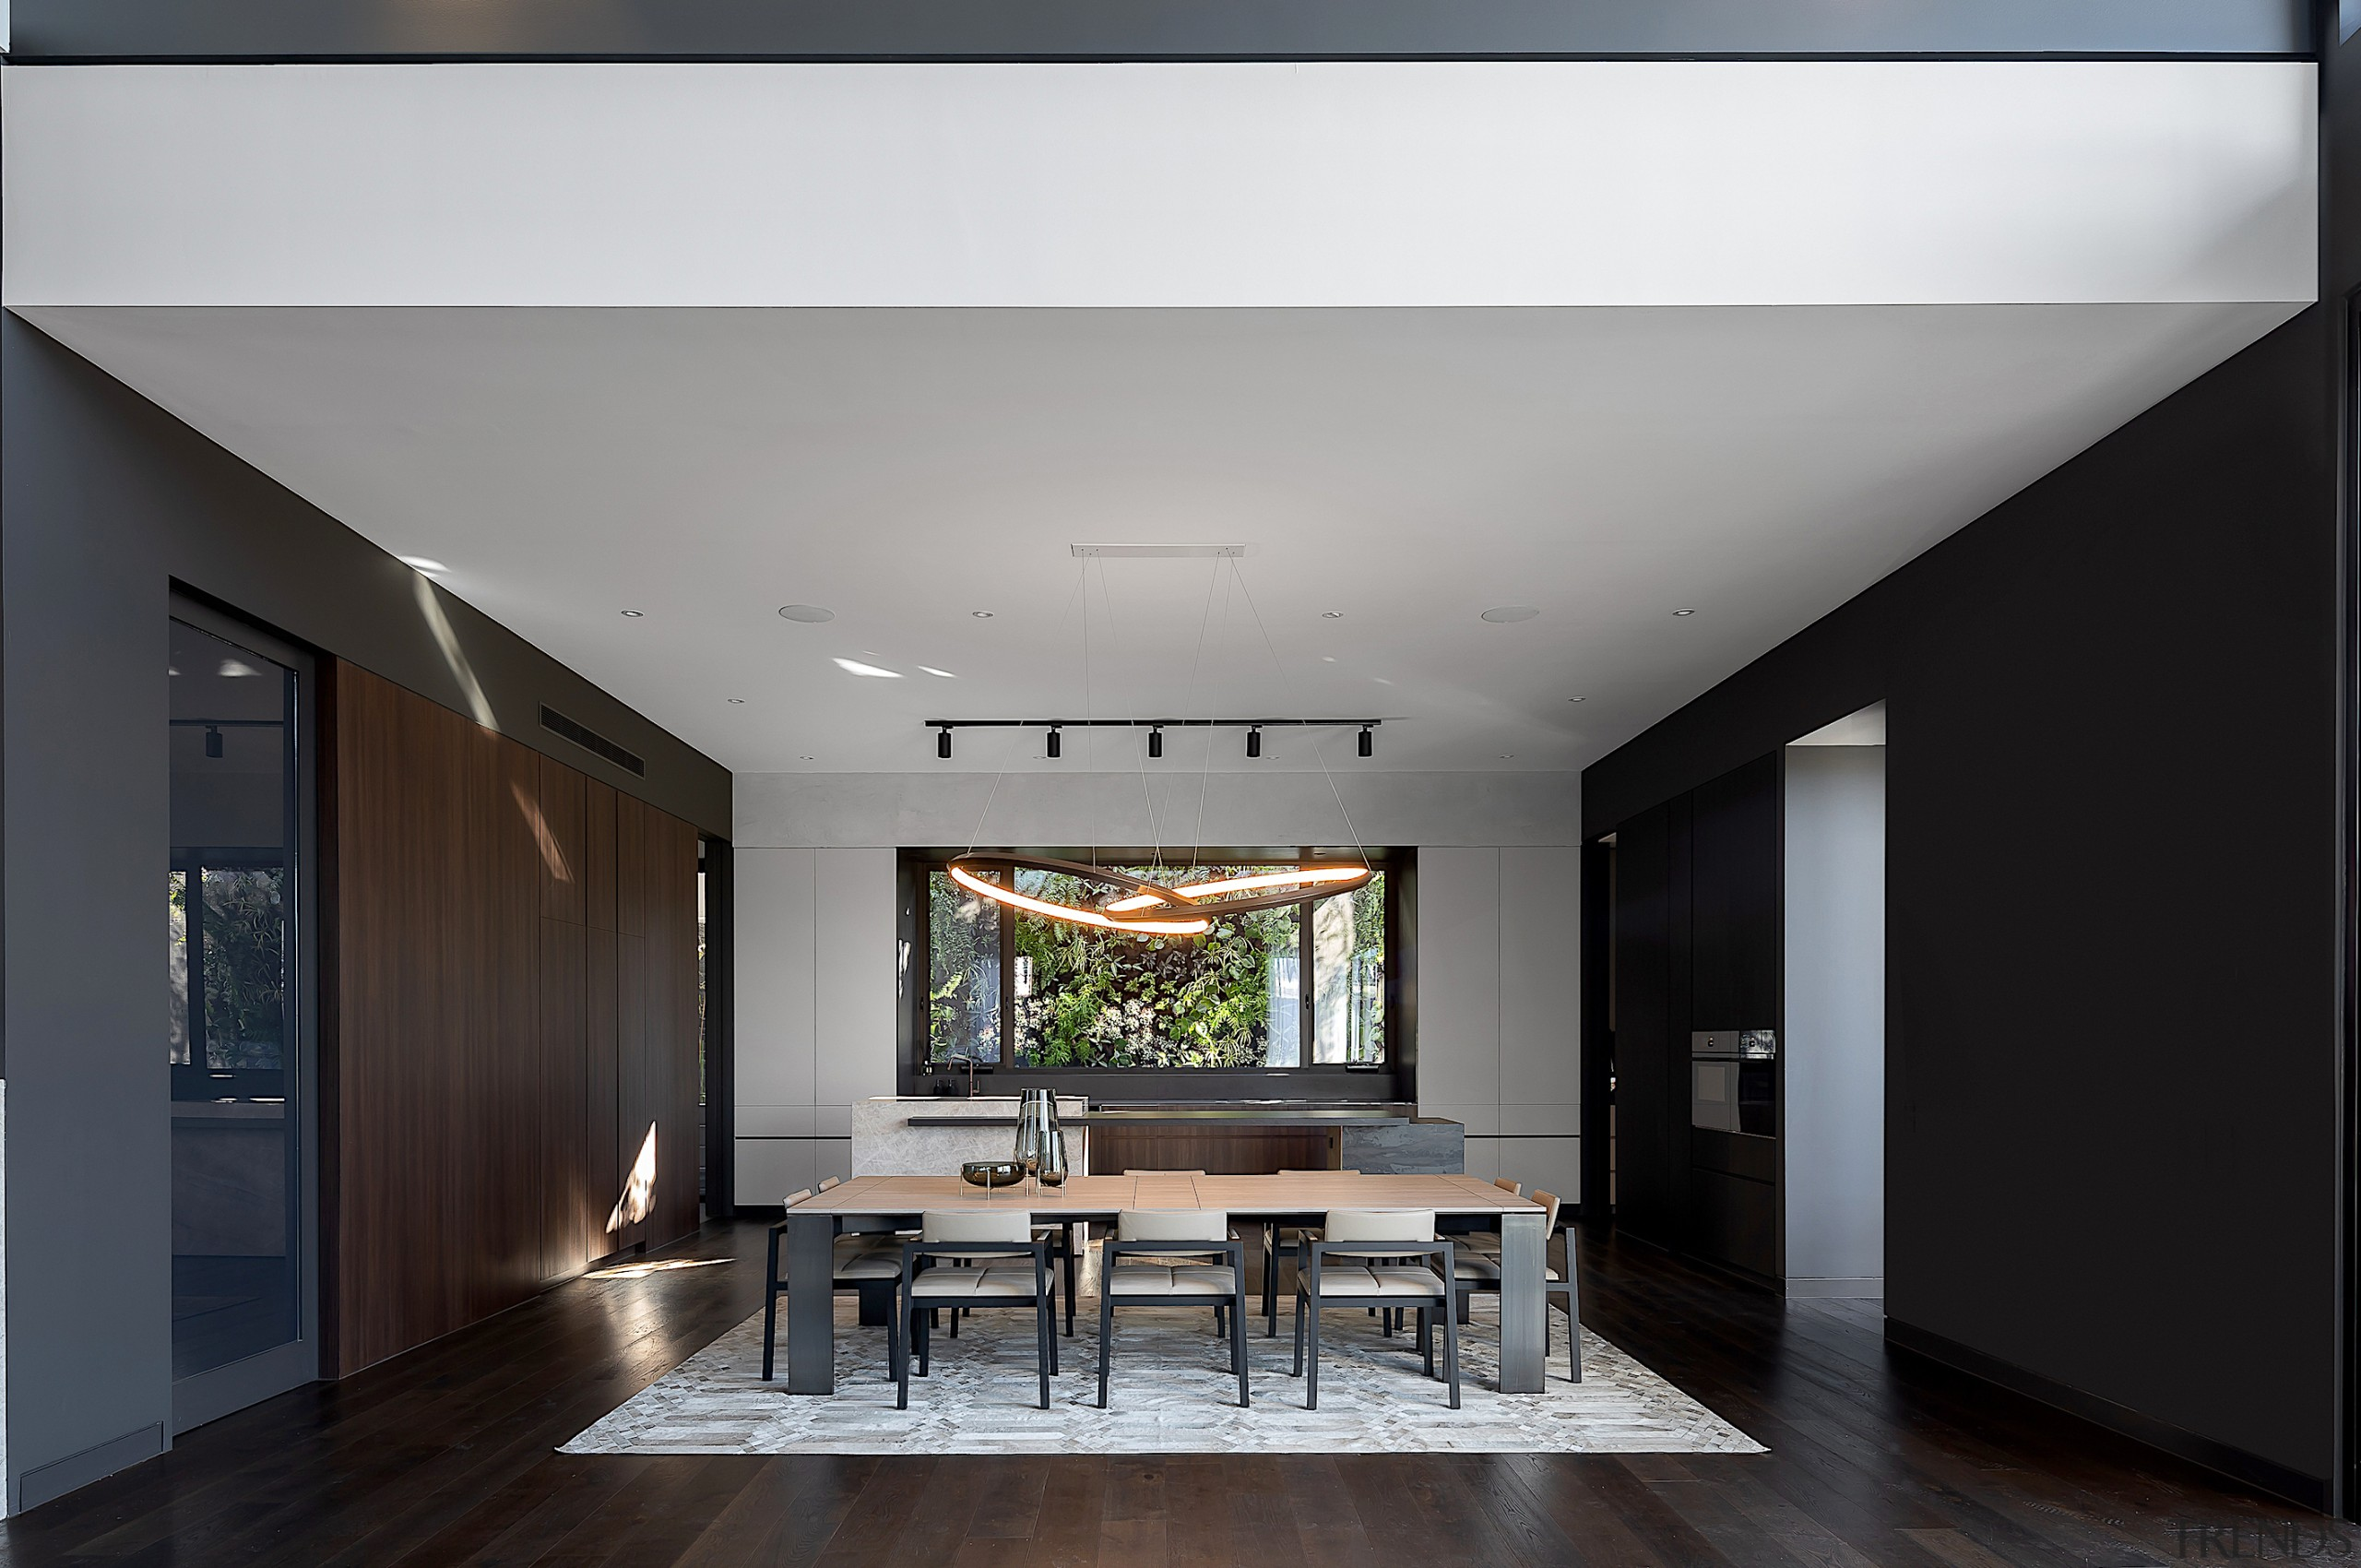 Kitchens don't come much more dramatic than this